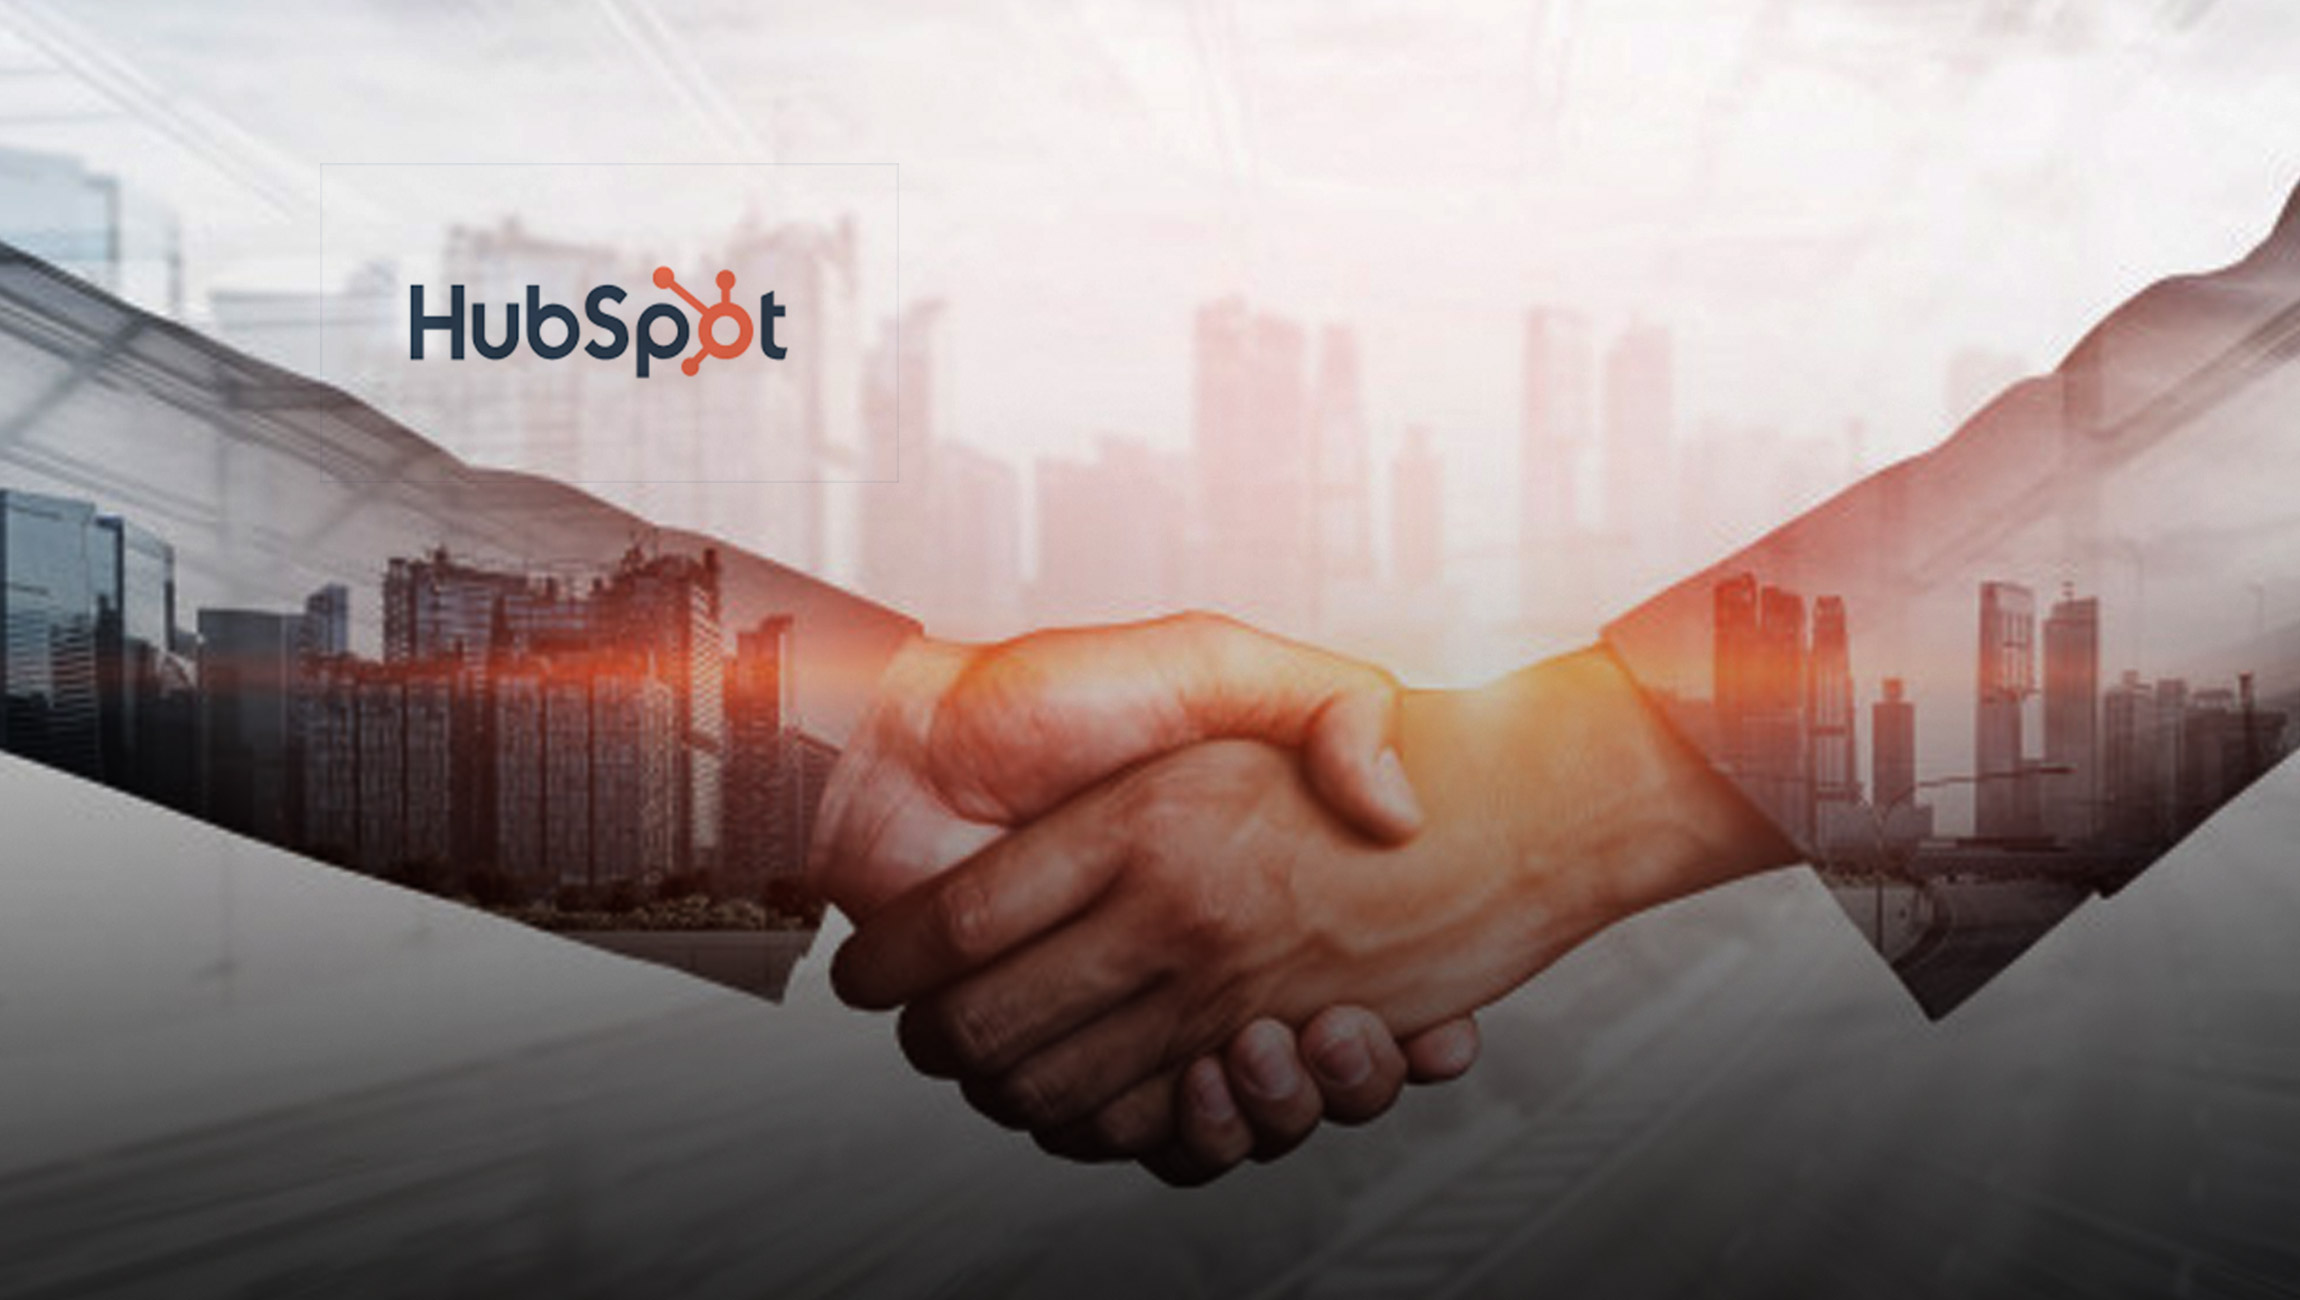 HubSpot to Present at the Morgan Stanley Technology Conference